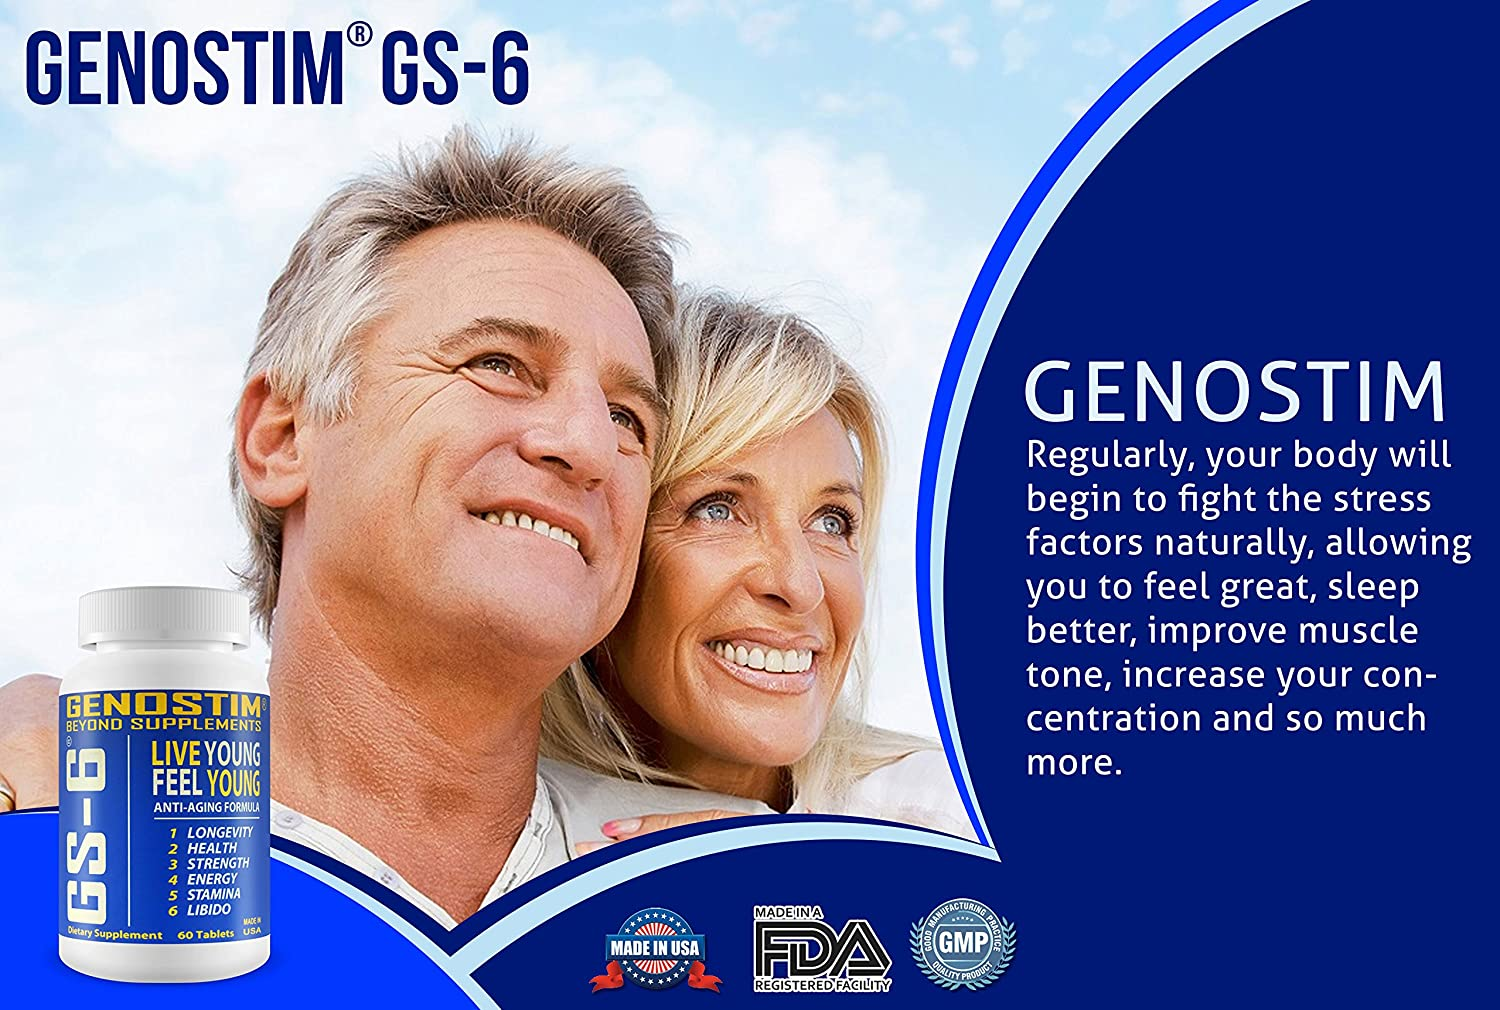 Genostim GS-6® Anti-Aging Protein Peptide Supplement, 100mg of Protein Peptides Stimulates Hormonal Balance for Accelerated Healing for Athletes and Cellular Rejuvenation for Men and Women, 60 Tablets : Health & Personal Care